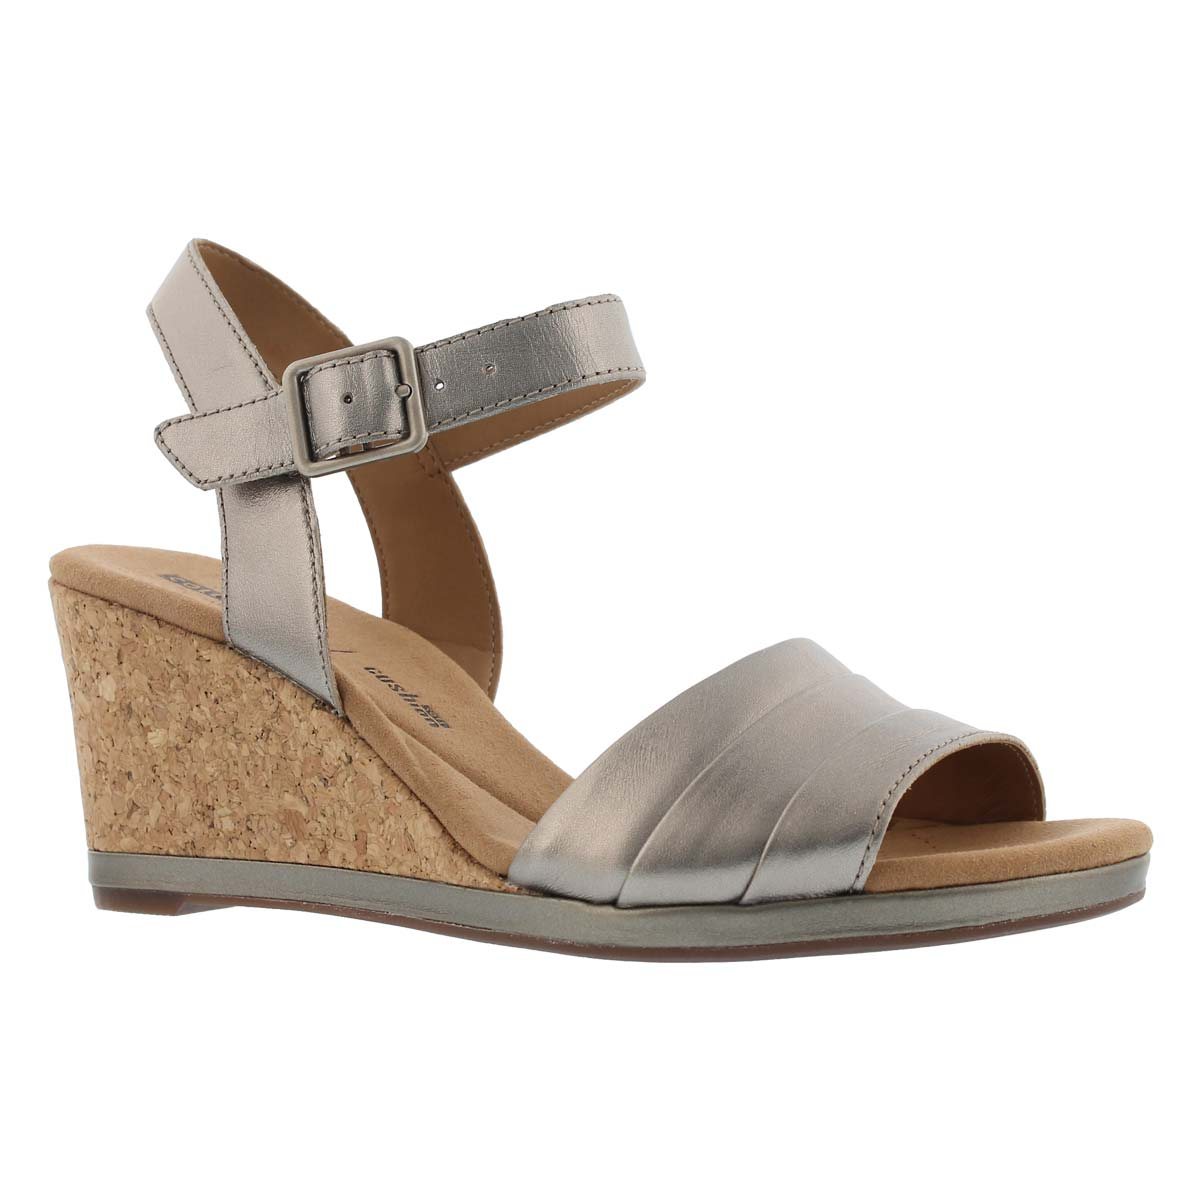 Women's LAFELY ALETHA pwter metallic wedge sandals